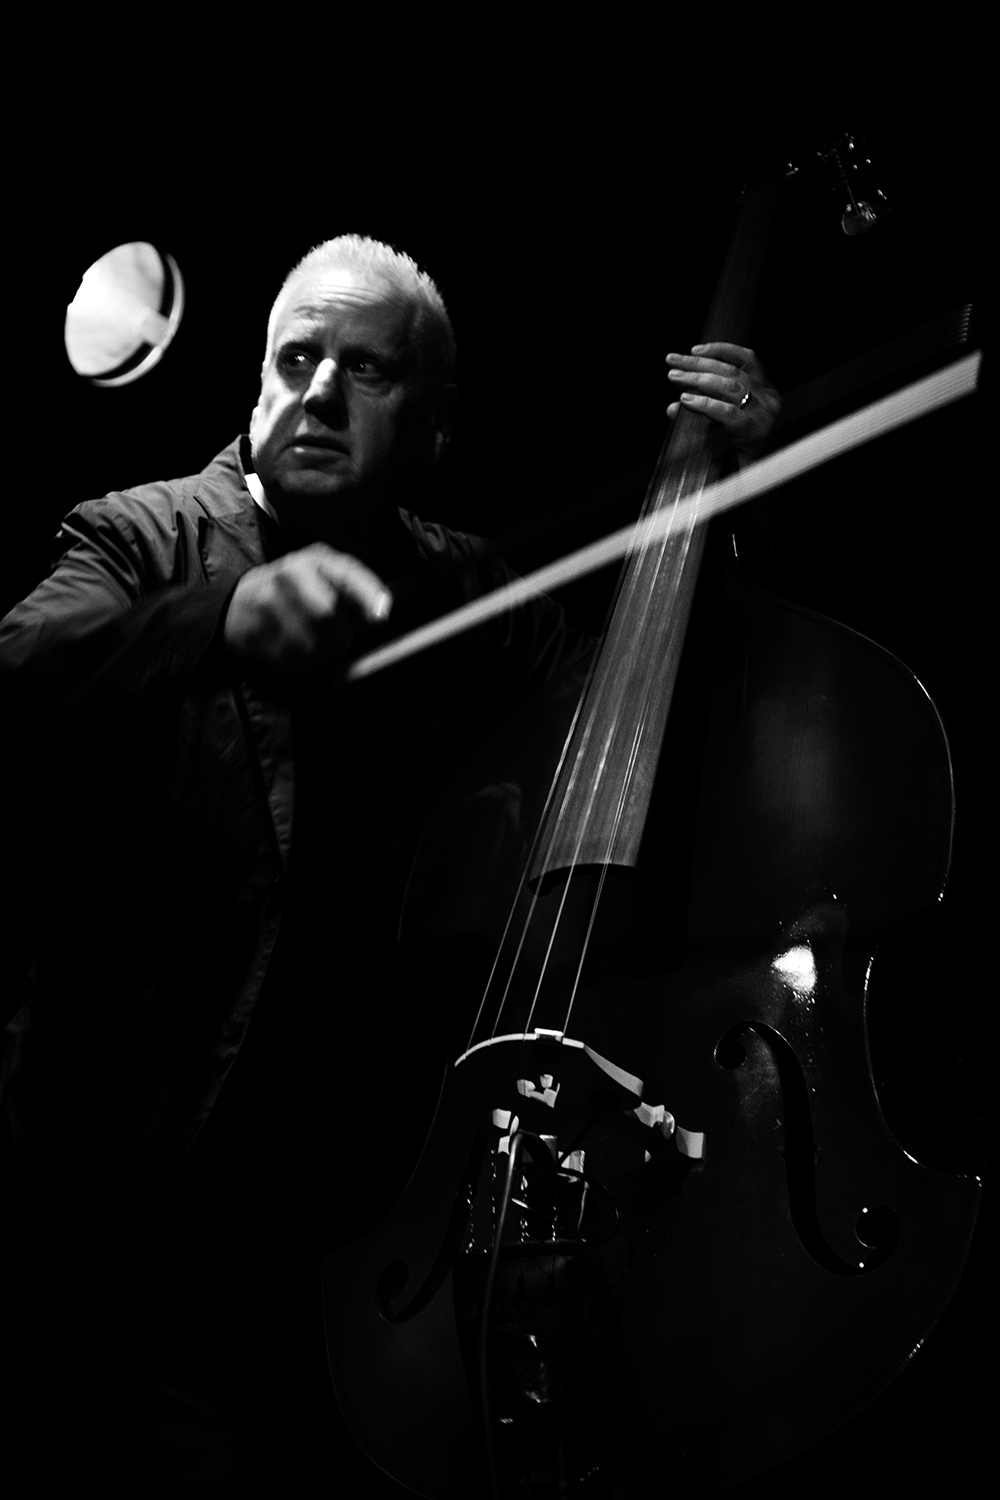 Arnold Dreyblatt & The Orchestra of Excited Strings by Laurent Orseau - Les Ateliers Claus - Brussels, Belgium #10